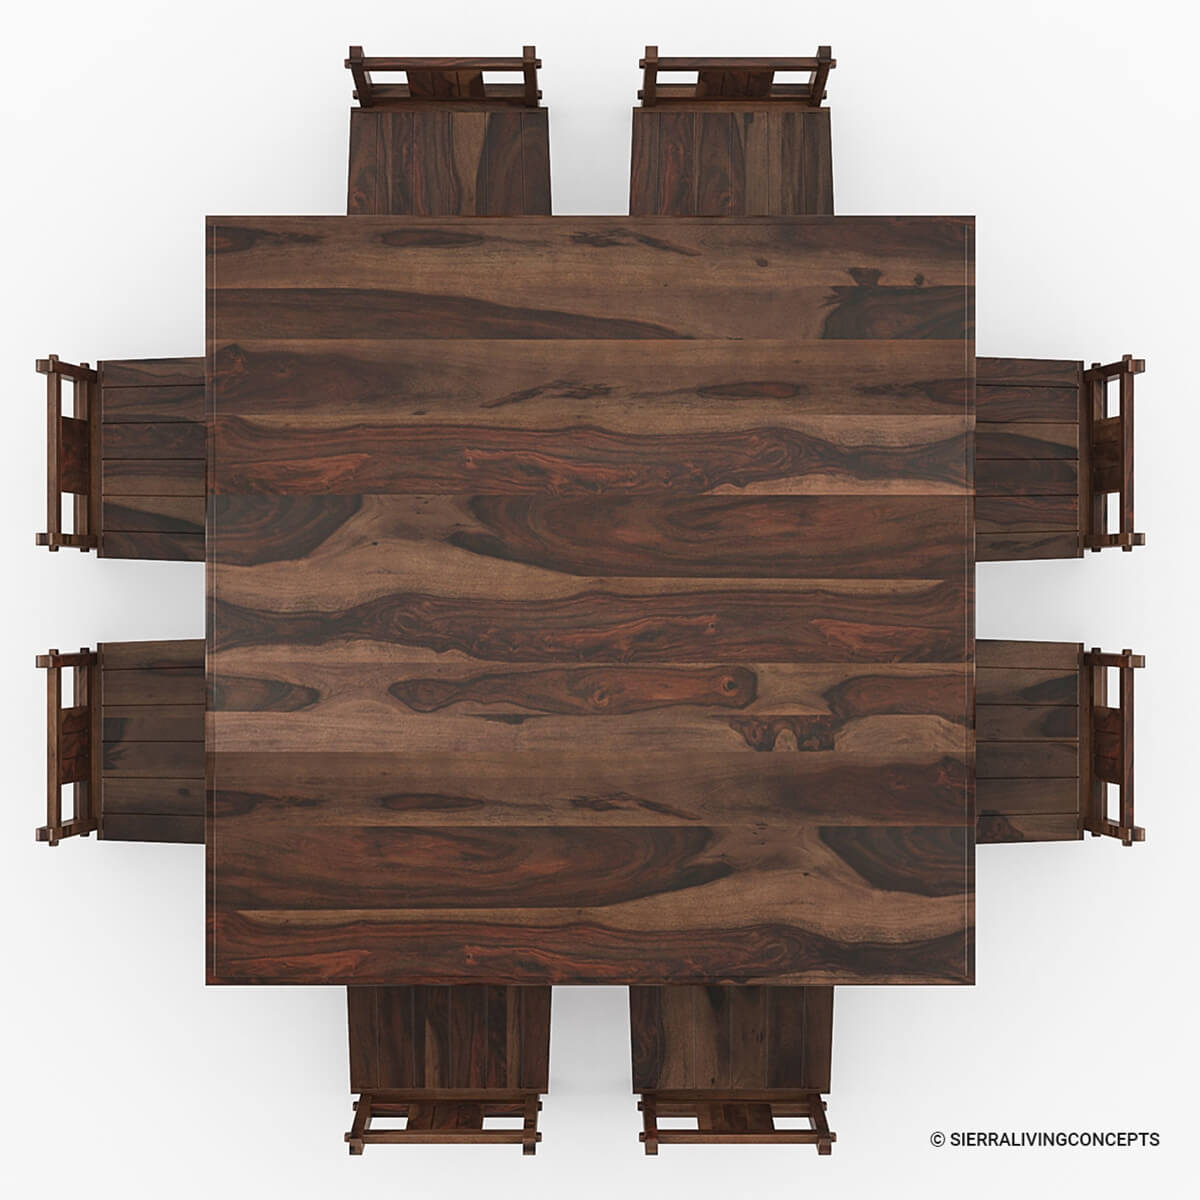 Oversized Dining Room Chairs: Richmond Rustic Solid Wood Large Square Dining Room Table